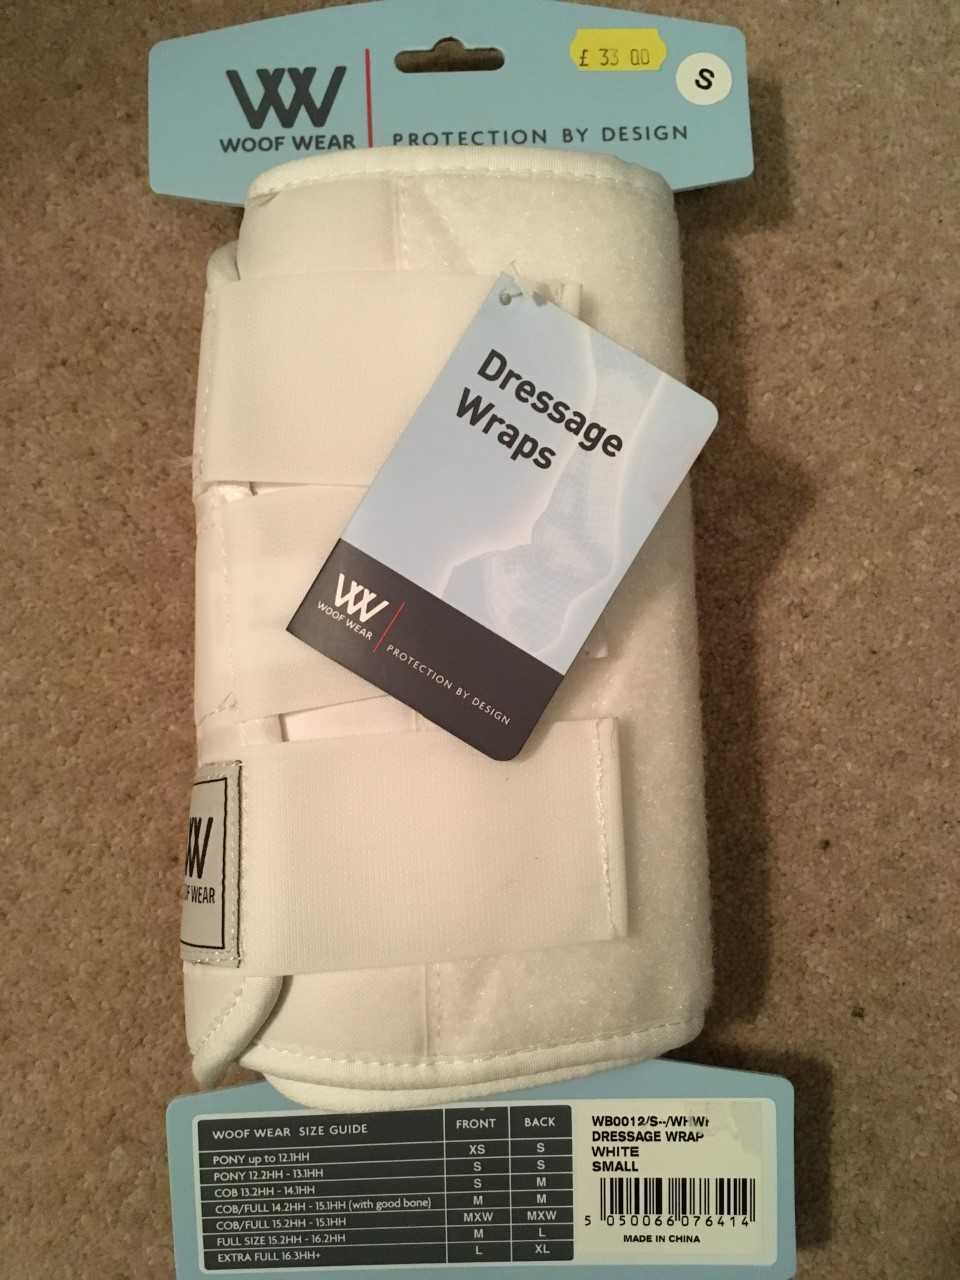 Woof Wear Dressage Wraps Small White